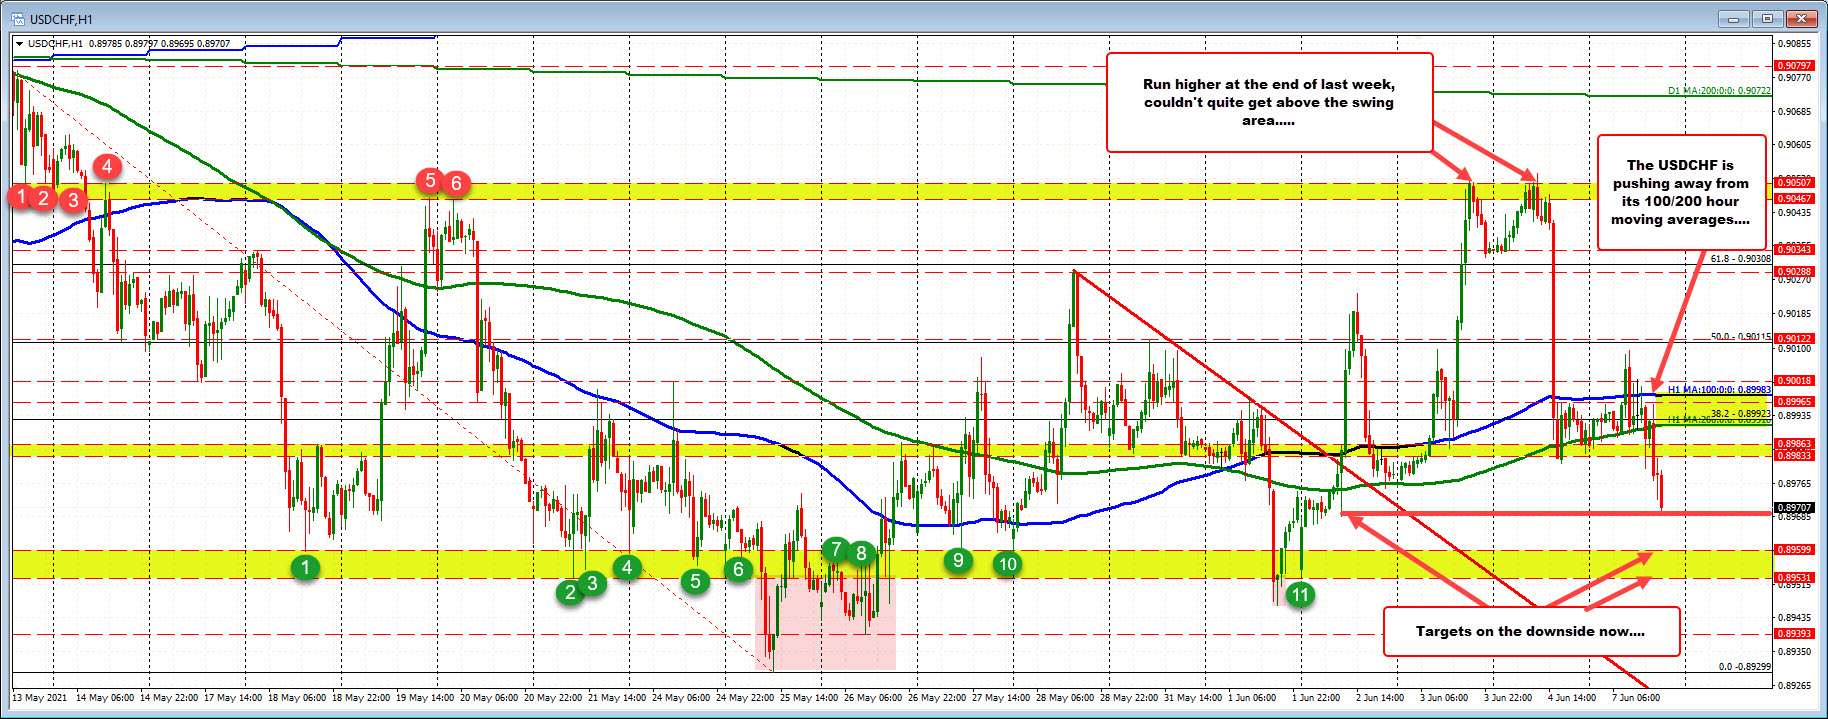 The USDCHF runsaway from 100/200 hour moving averages.